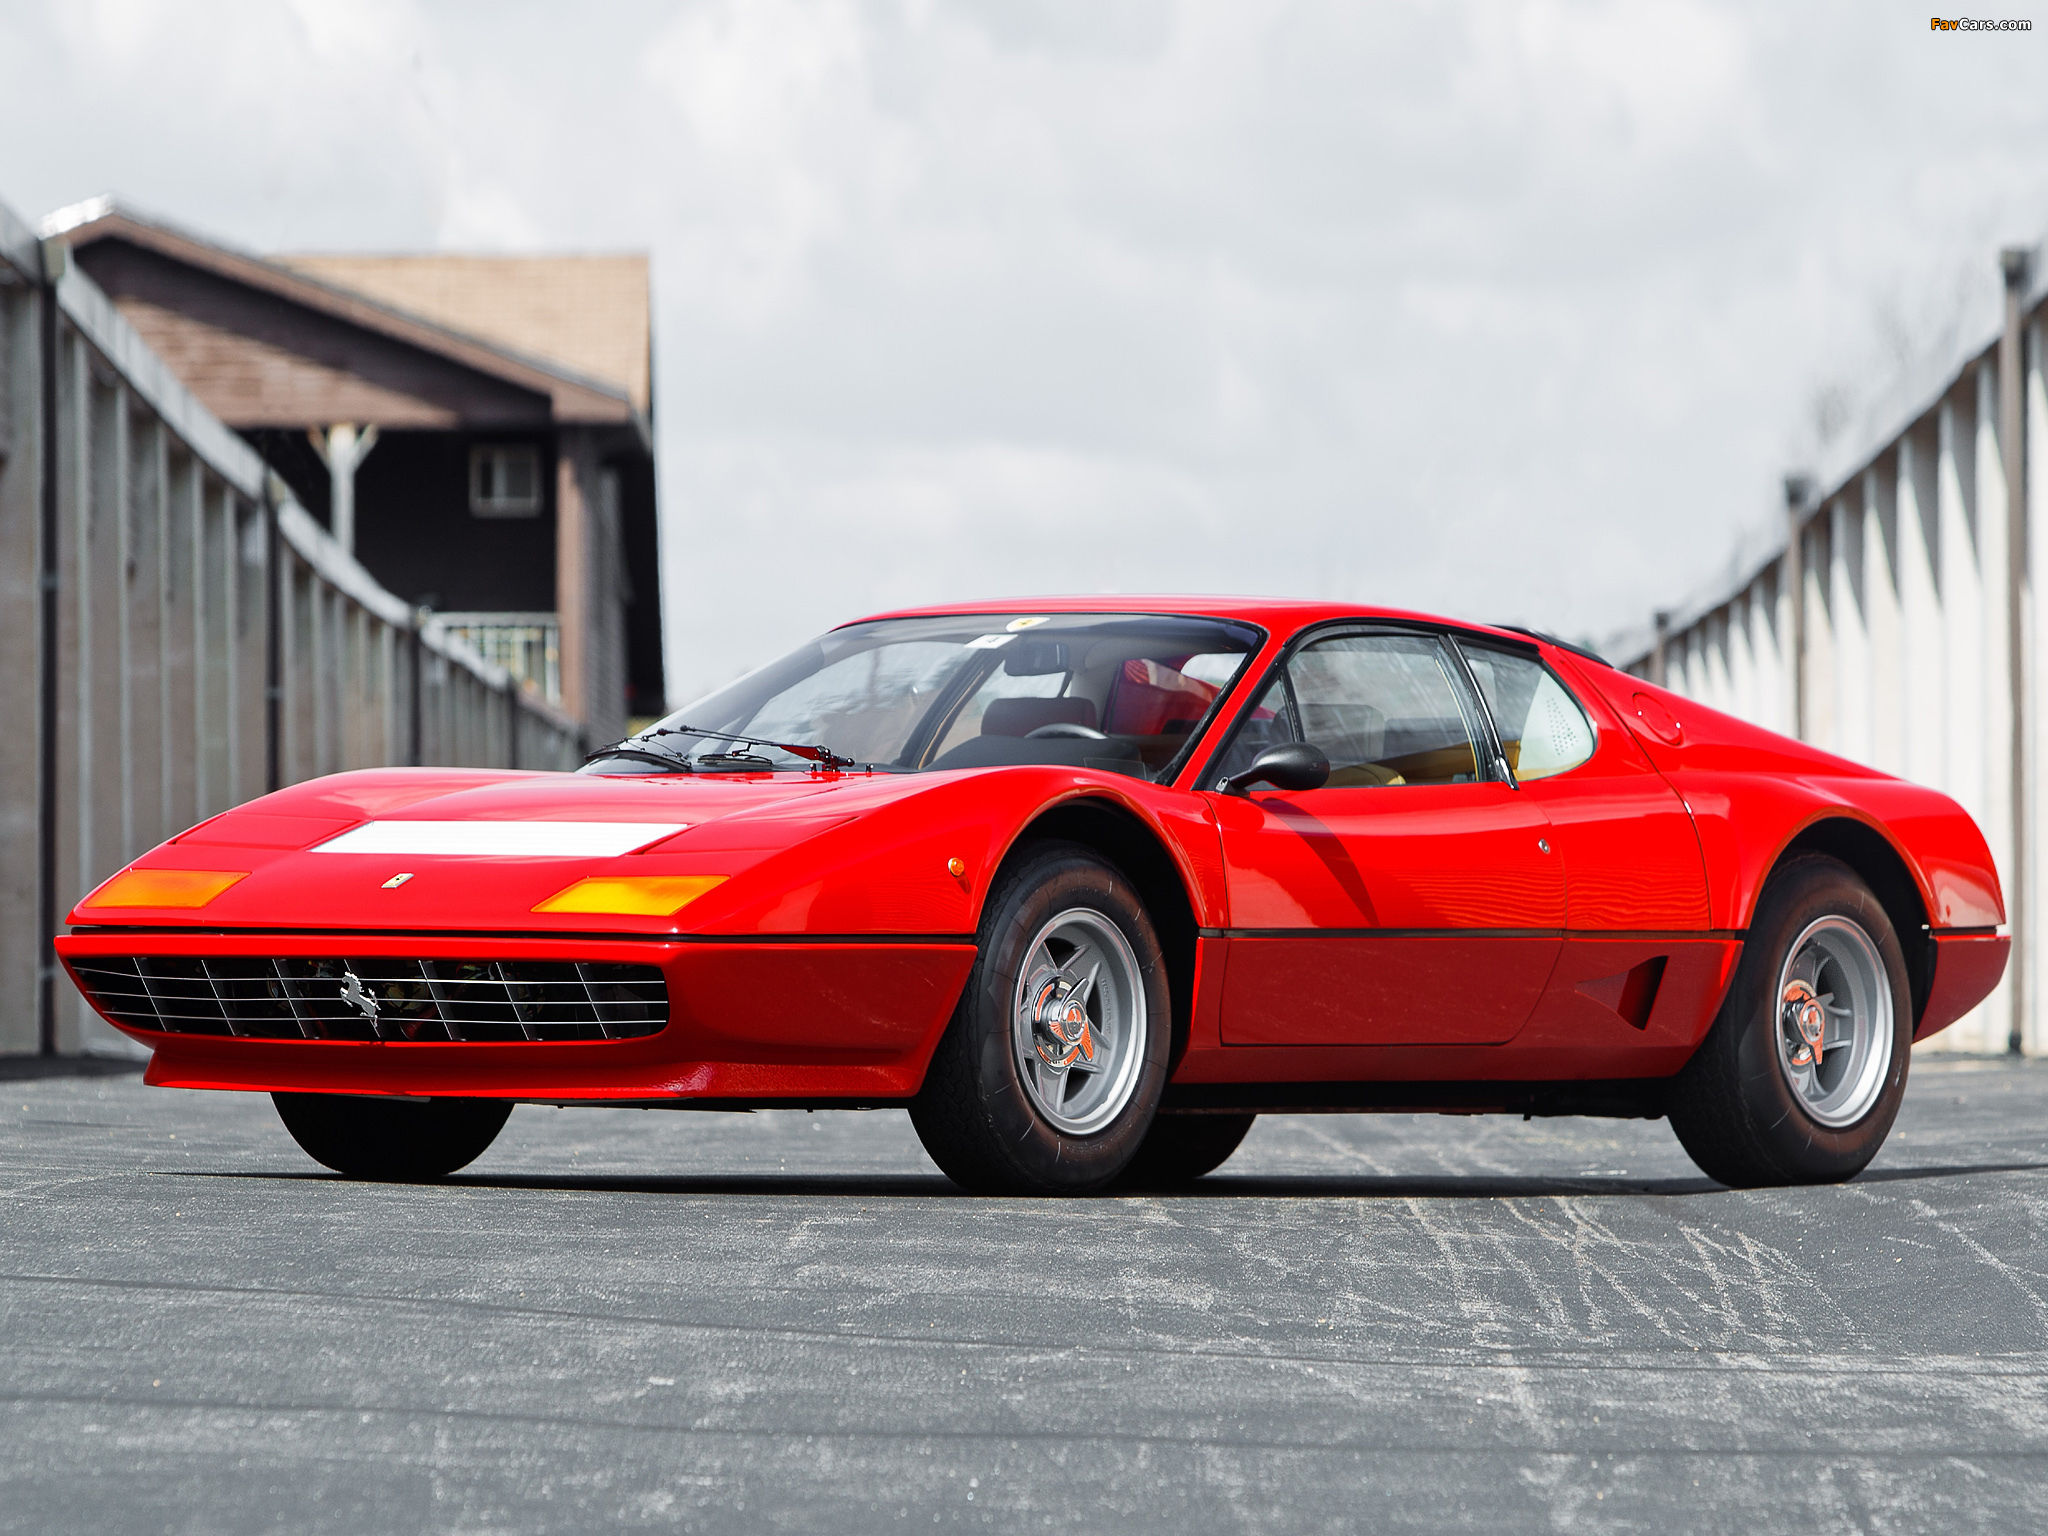 ferrari 512 wallpaper #4